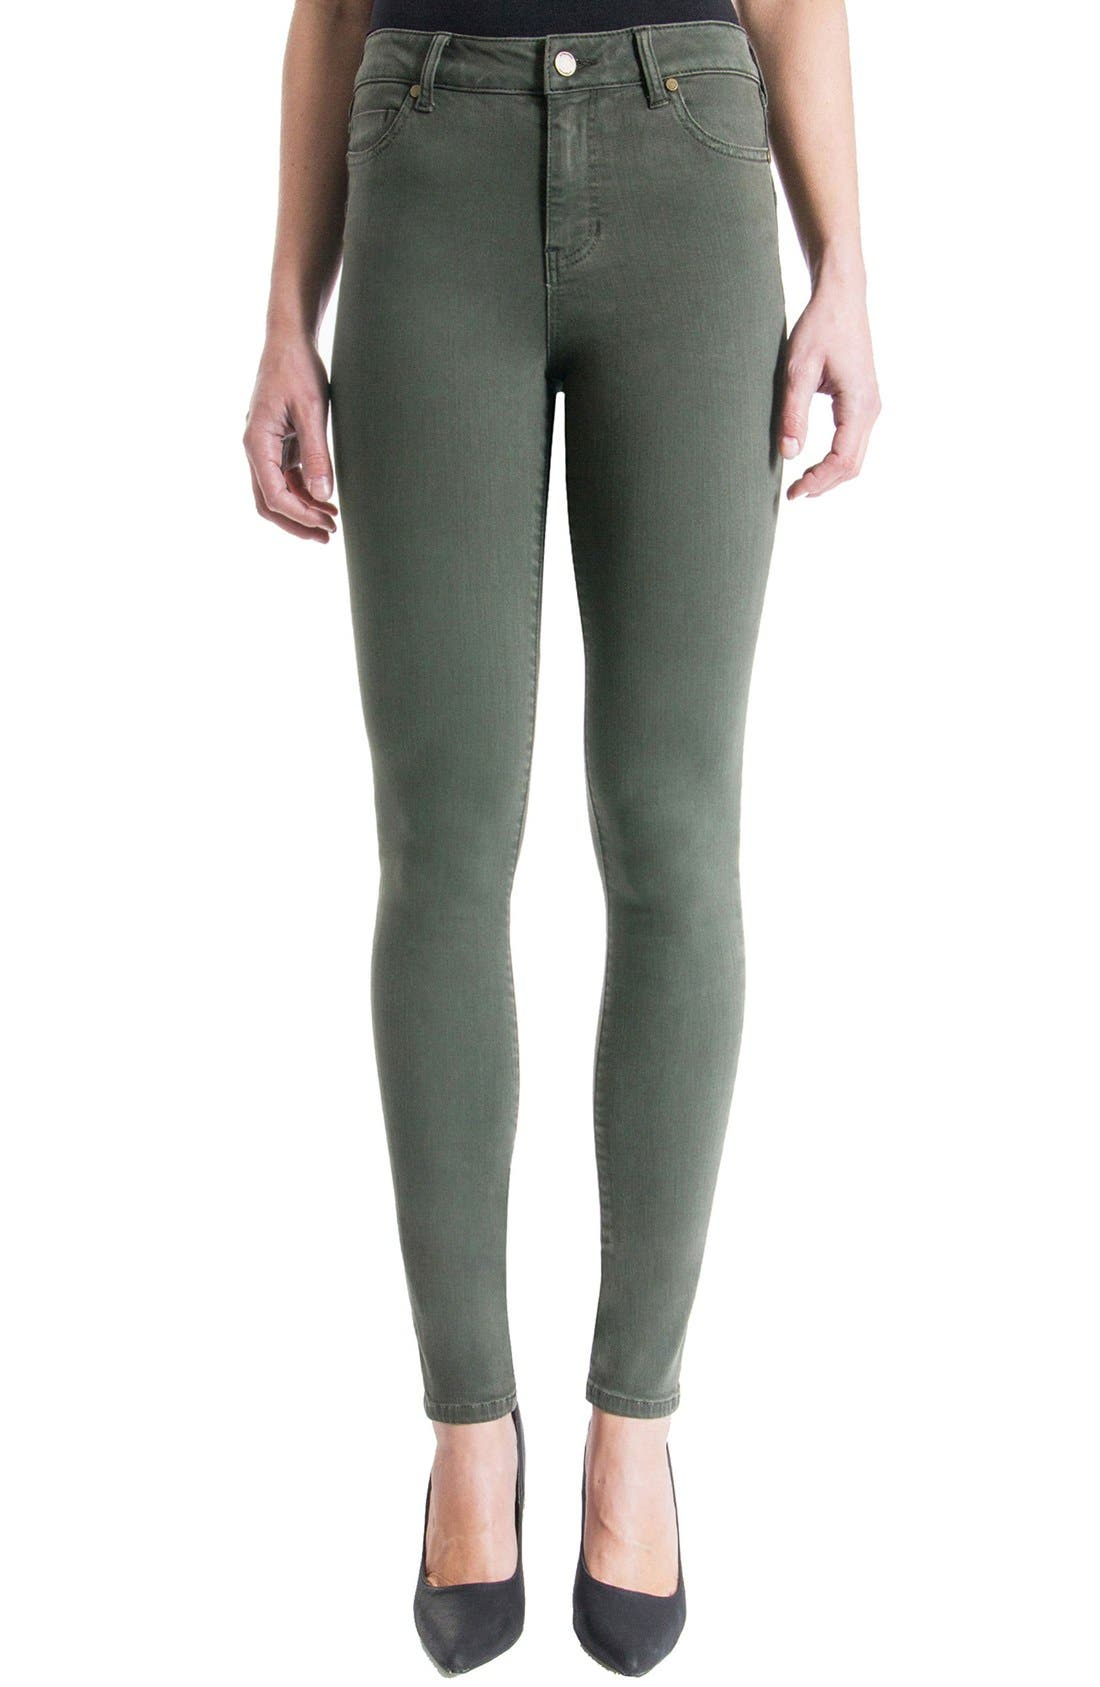 Alternate Image 1 Selected - Liverpool Jeans Company 'The Hugger Aiden' Stretch Skinny Jeans (Cypress Dark Olive)